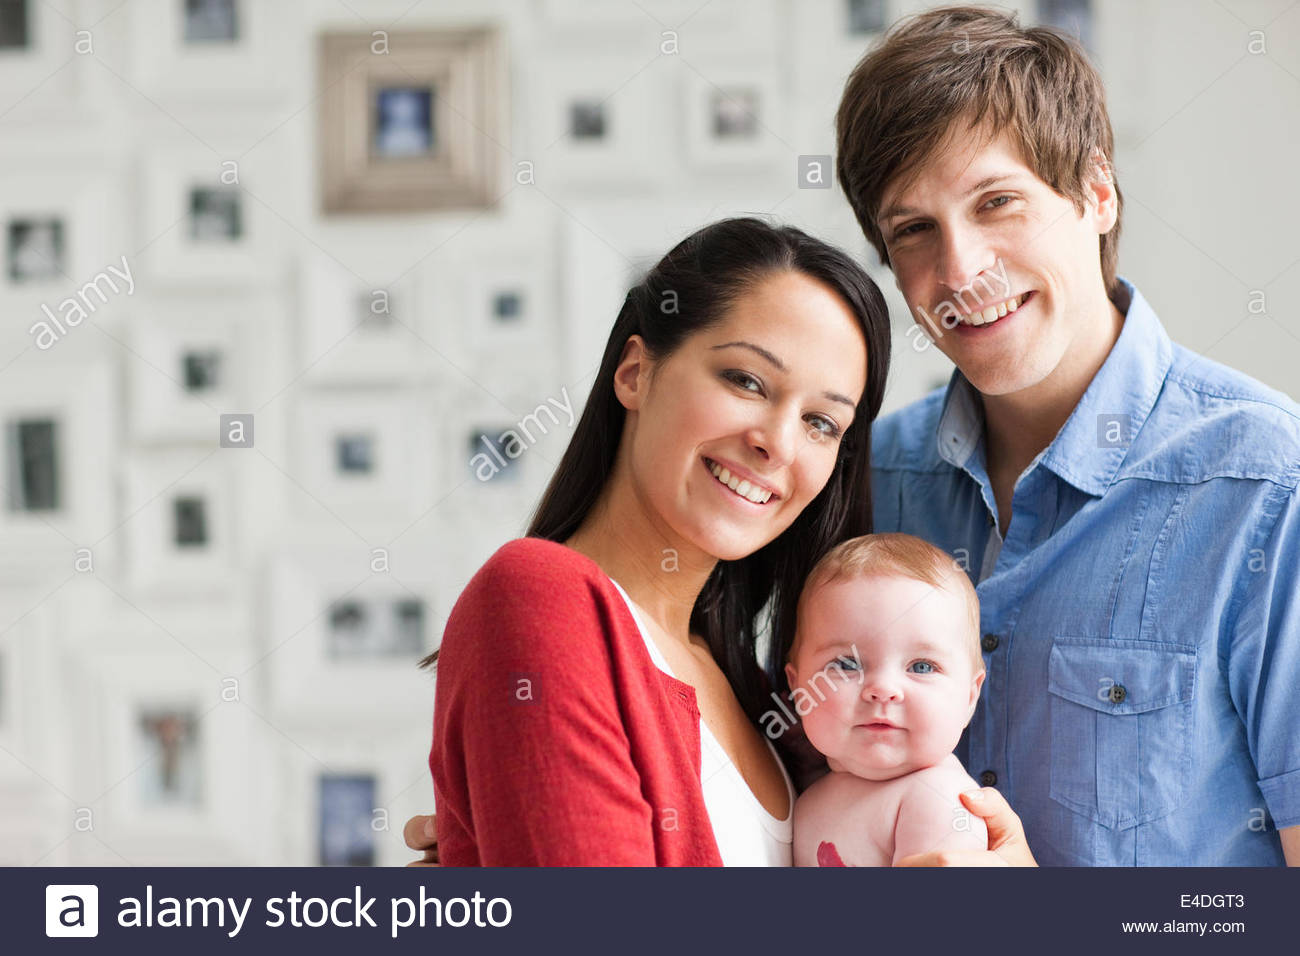 Smiling parents holding baby - Stock Image